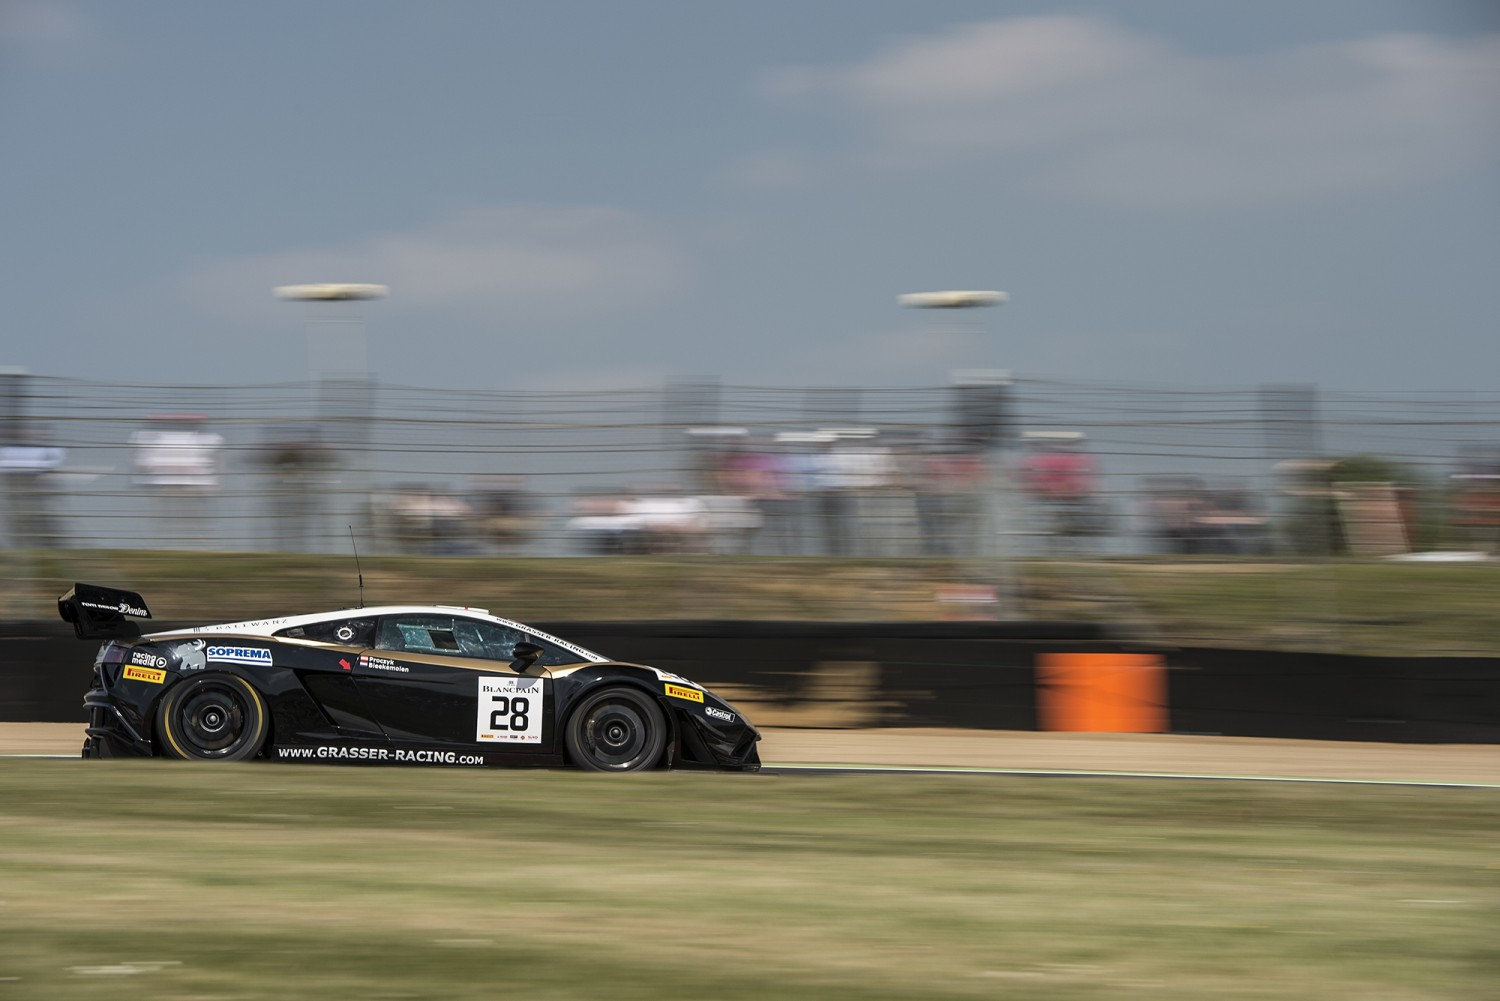 Blancpain Sprint Series - Main Race Brands Hatch -  Grasser Racing Team Lamborghini takes both wins at Brands Hatch